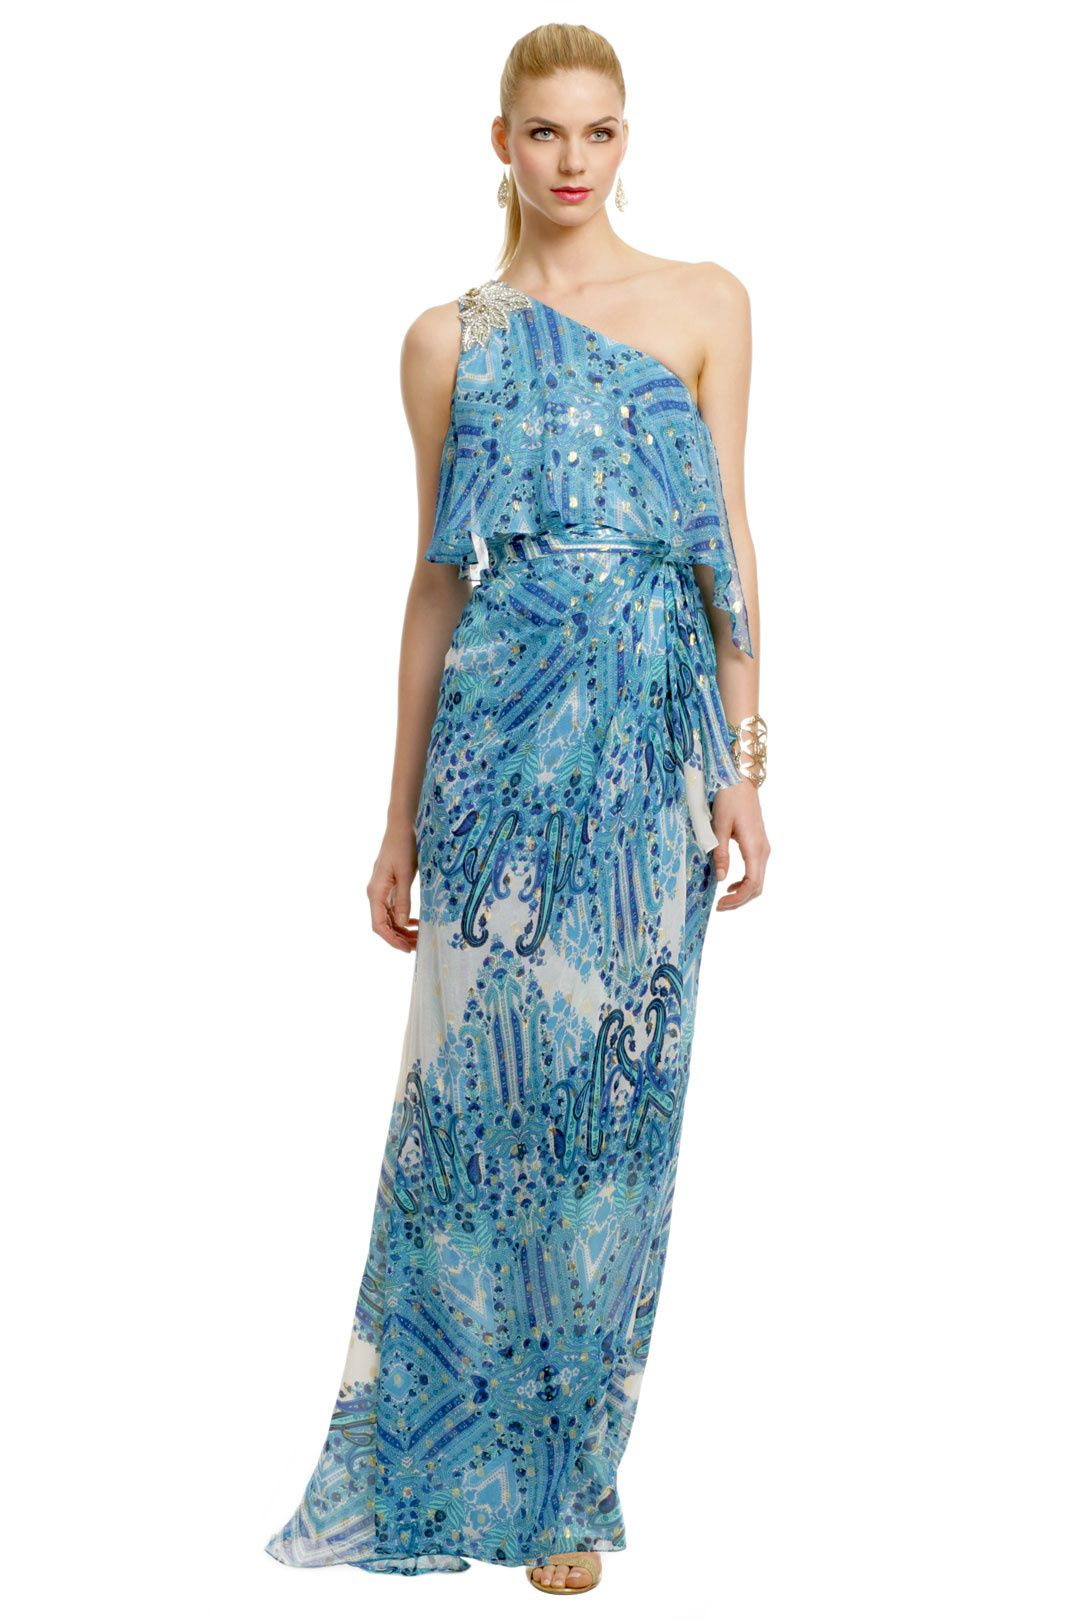 Dresses to wear to a beach wedding as a guest  Badgley Mischka Dream On Gown  This dress was just made for beach